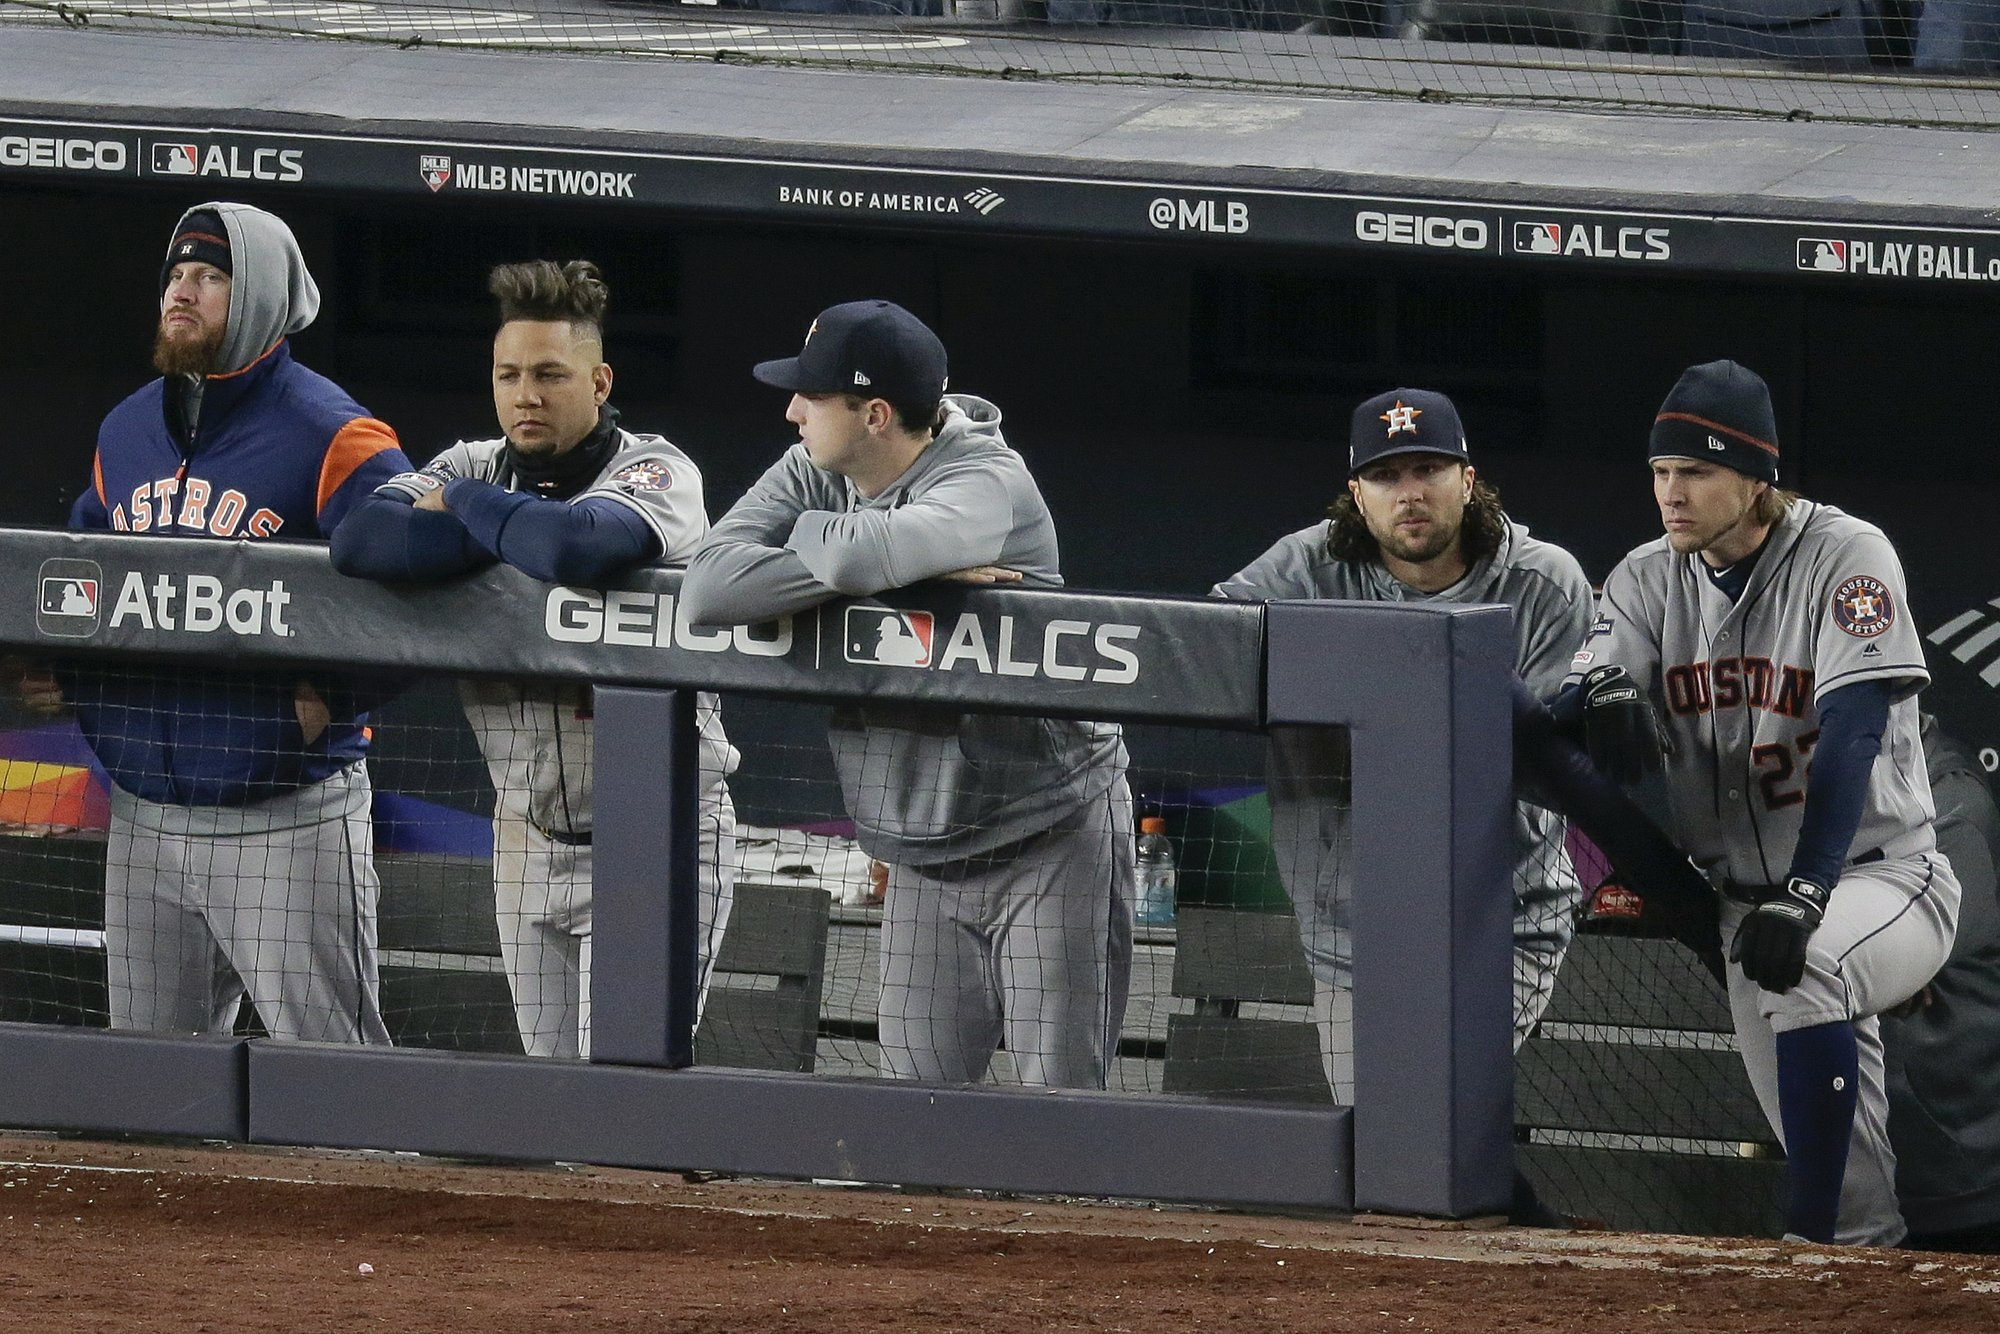 Astros' Peacock to start against Yankees in Game 6 of ALCS